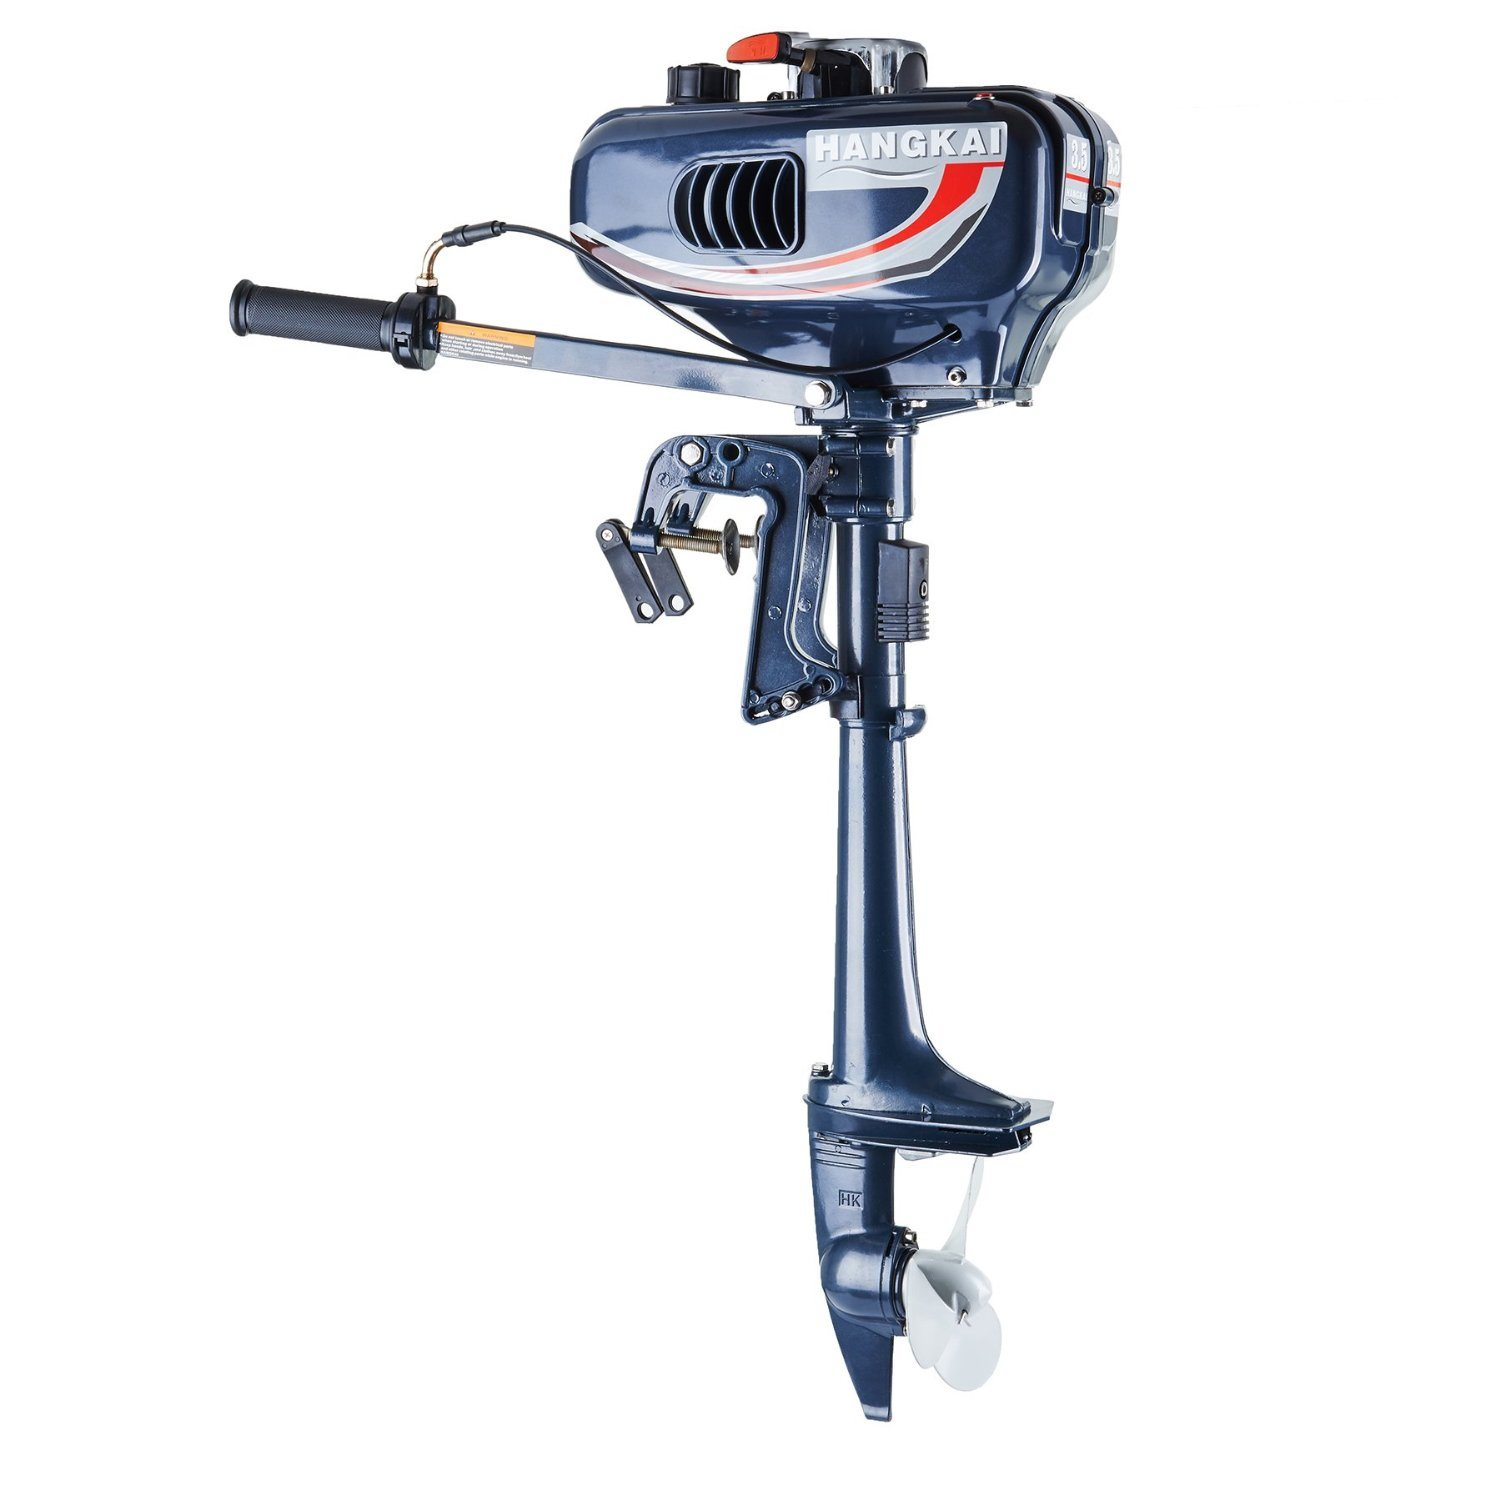 Ce Water Cooled 2 Stroke 3.5HP Hangkai Outboard Motor